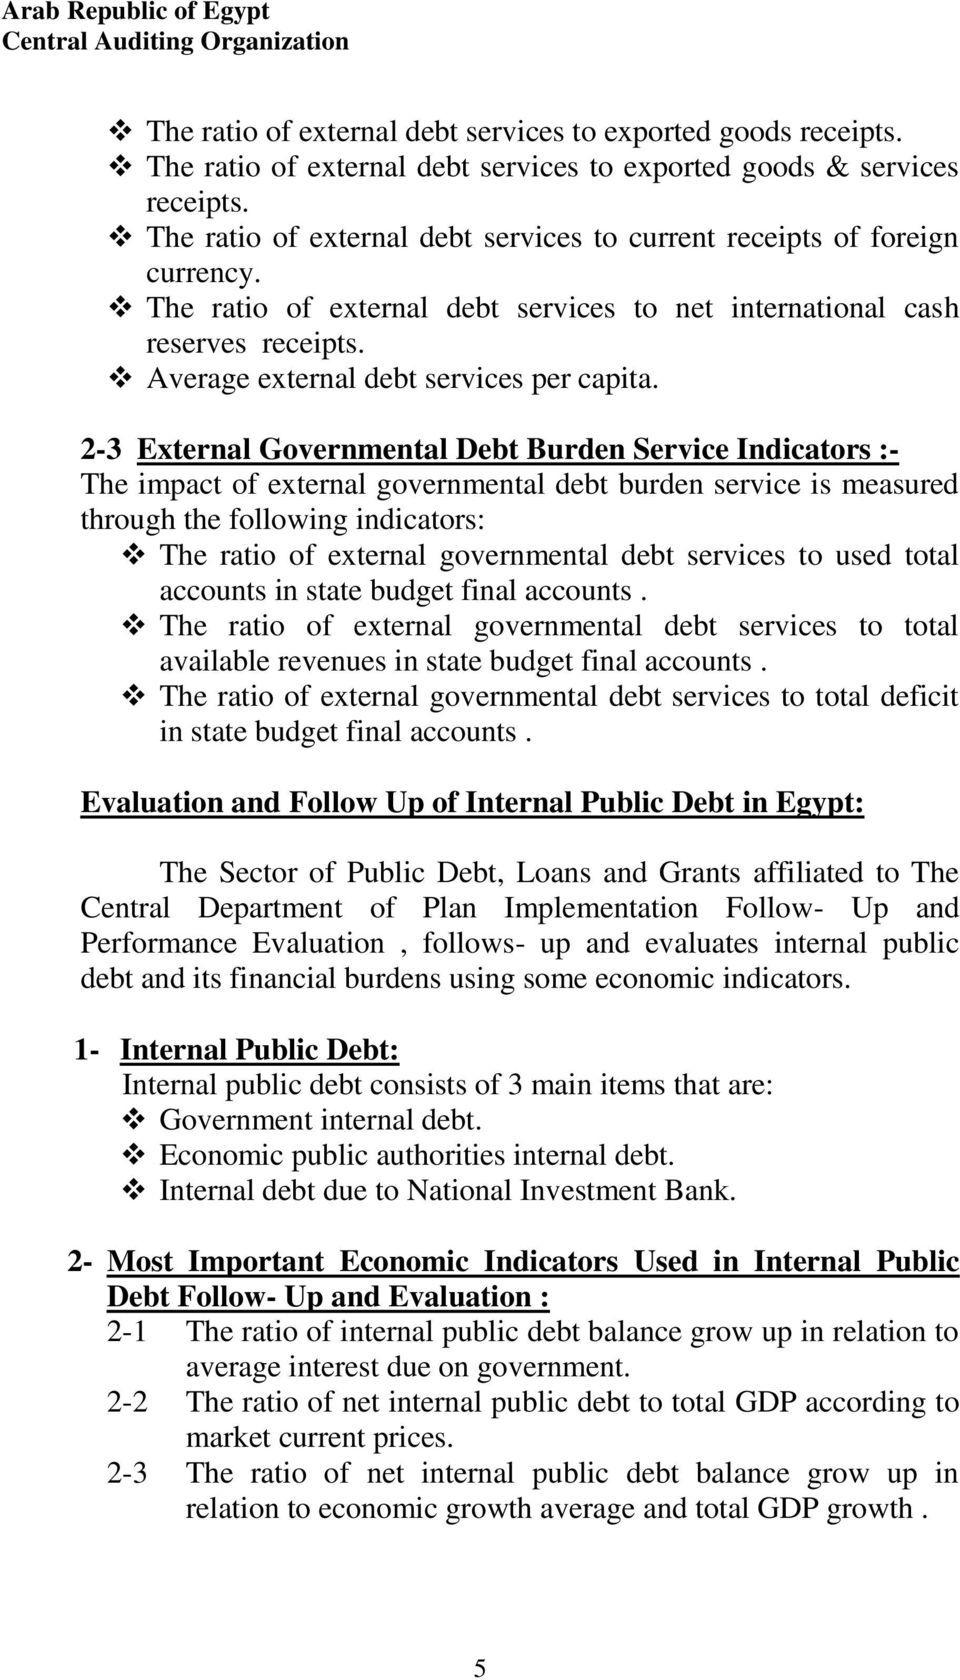 2-3 External Governmental Debt Burden Service Indicators :- The impact of external governmental debt burden service is measured through the following indicators: The ratio of external governmental